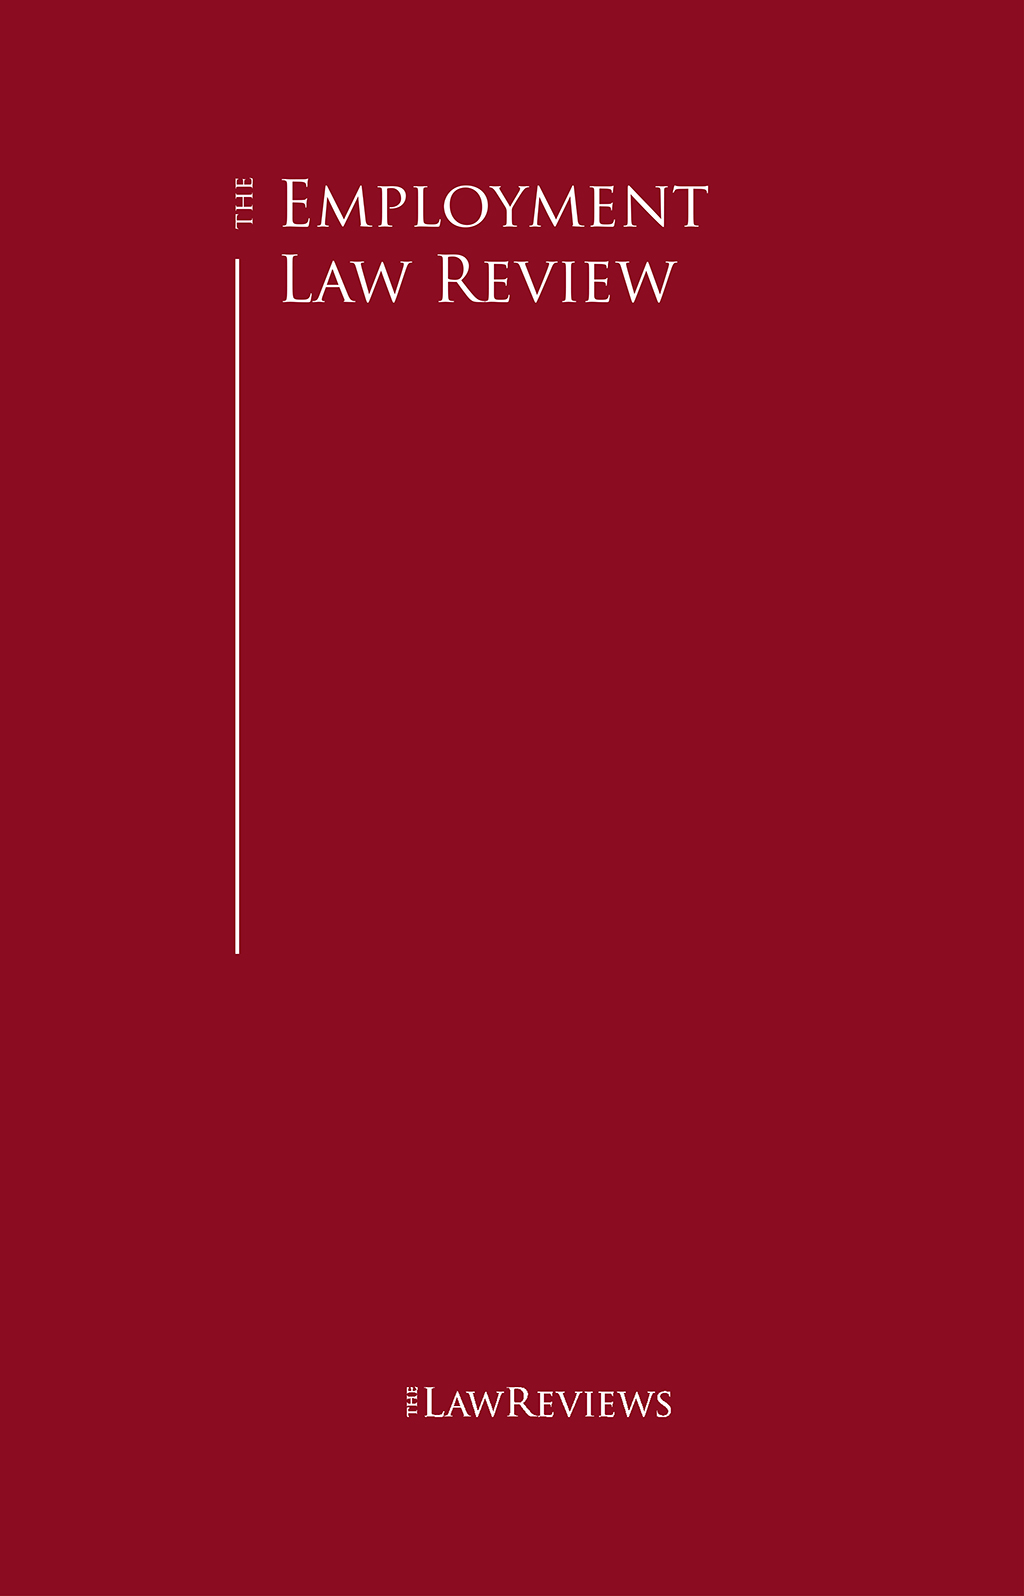 The Employment Law Review